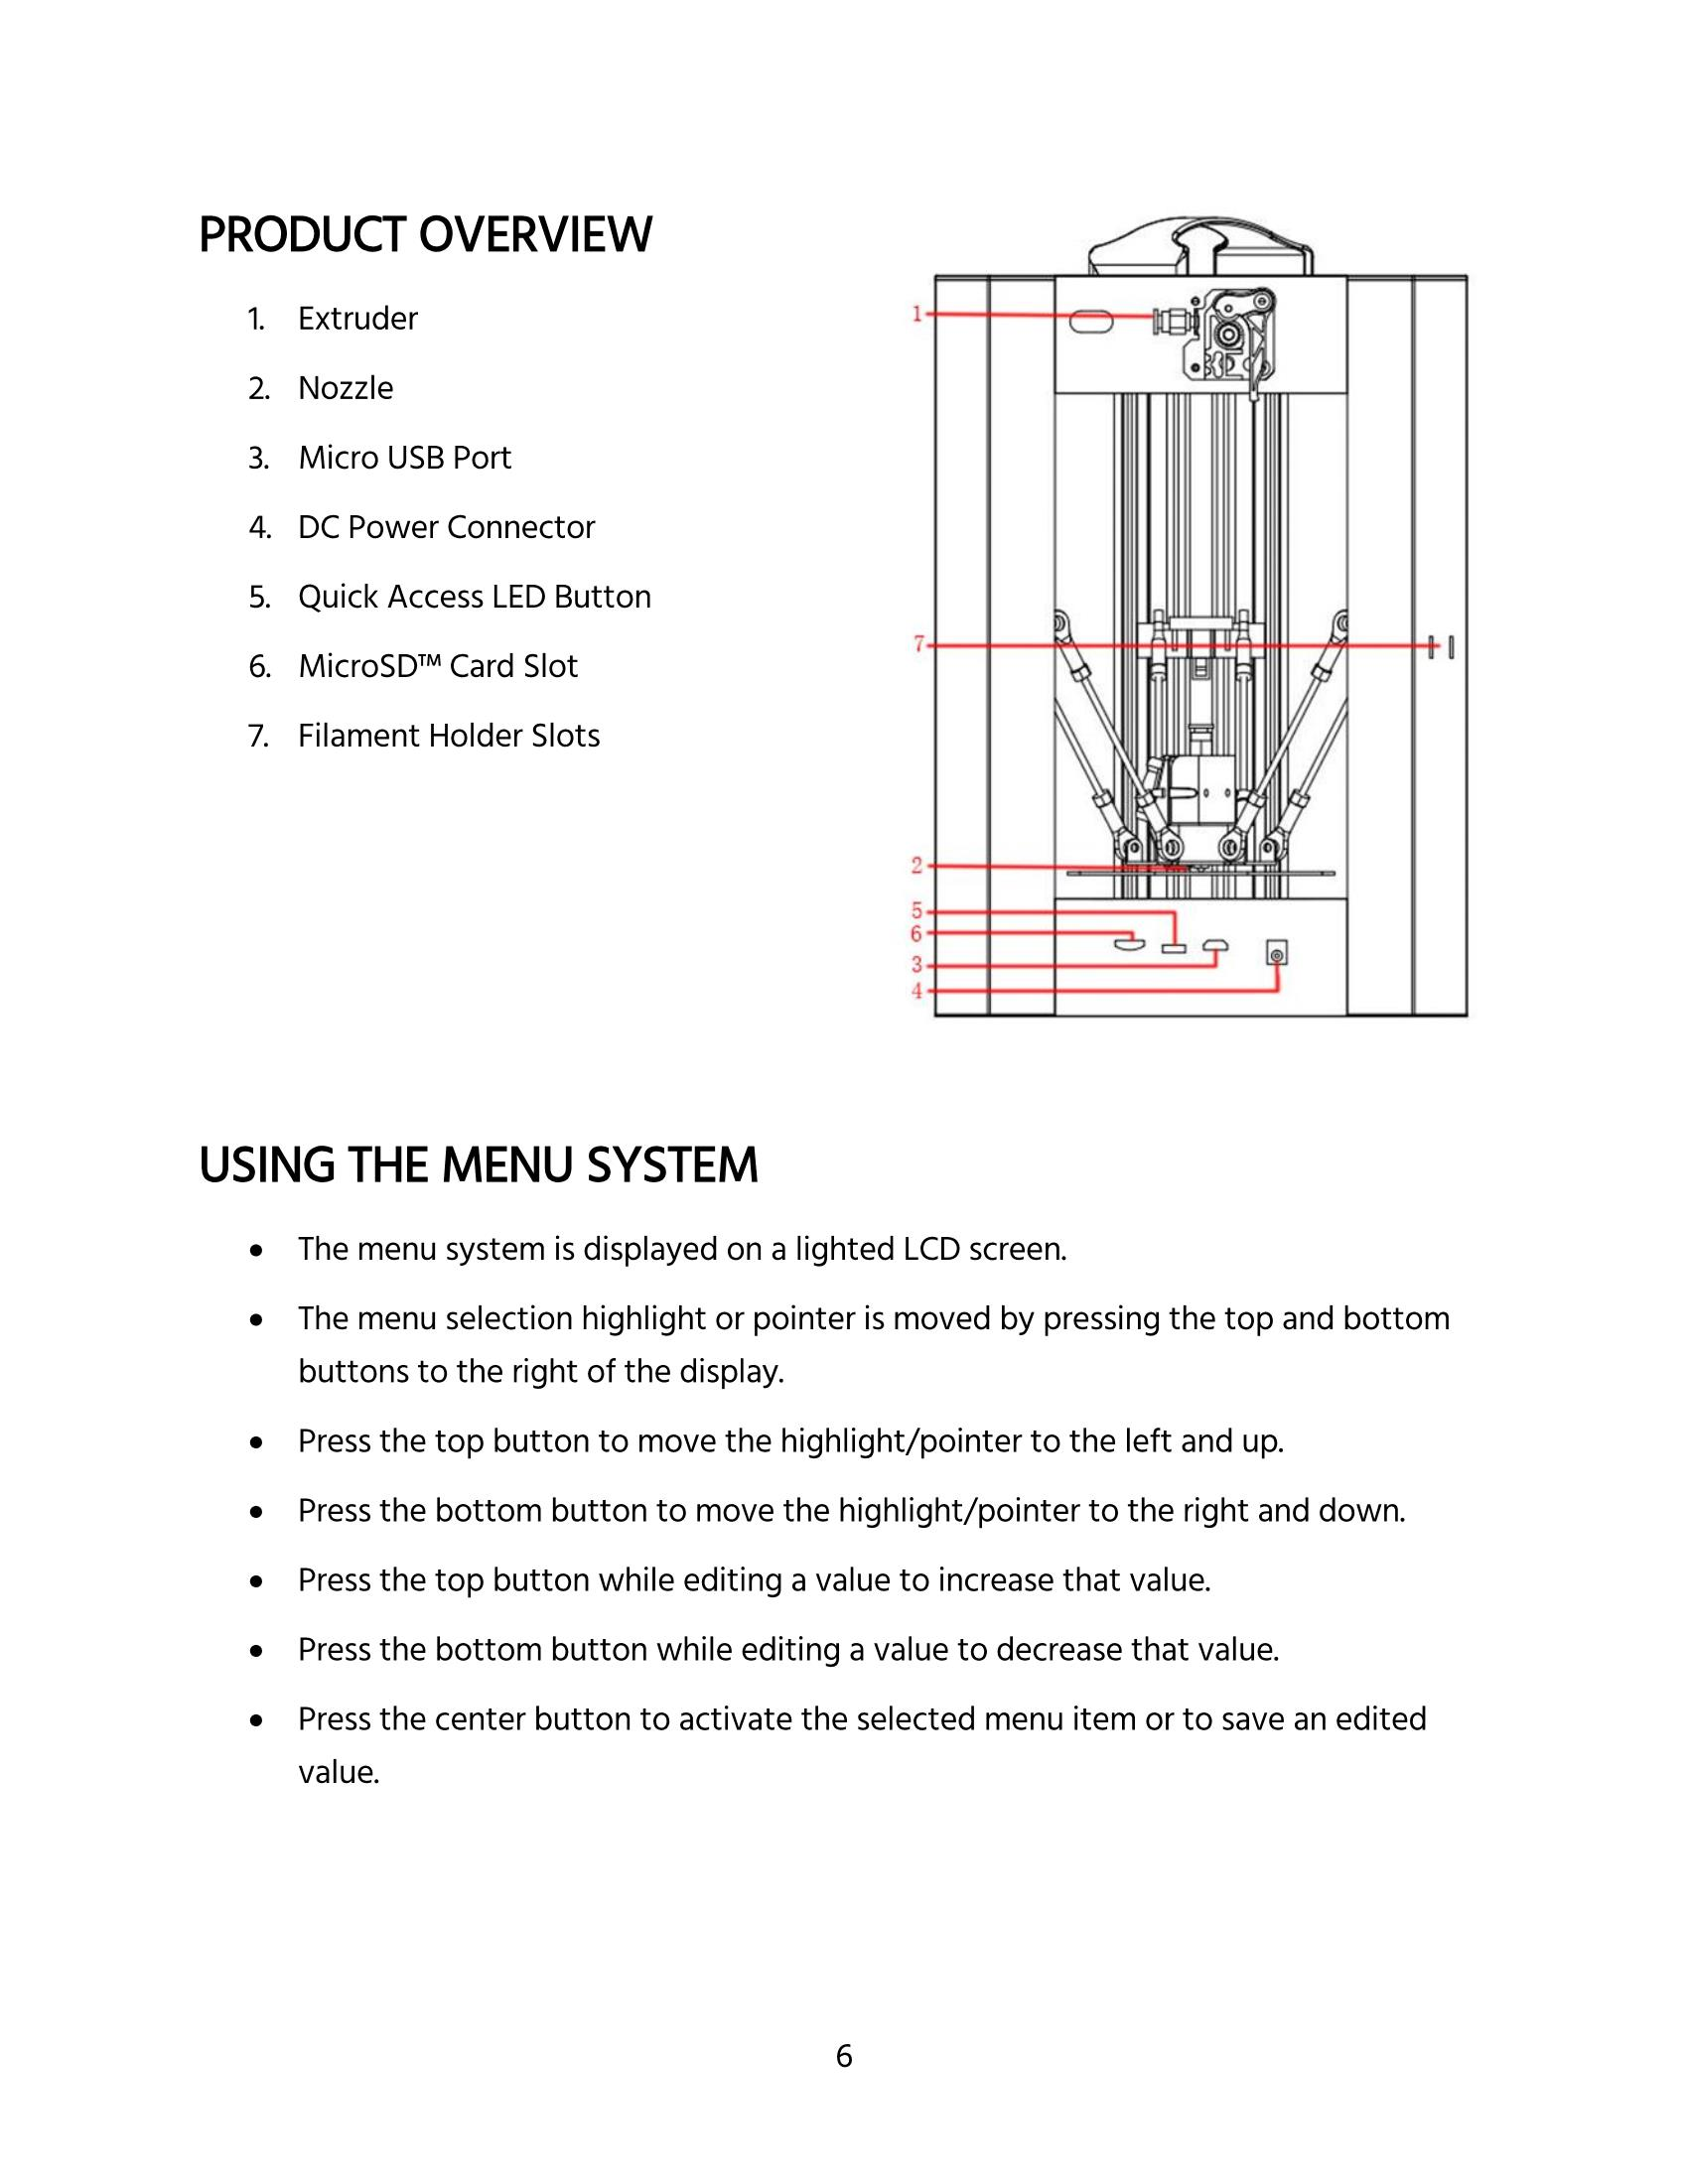 MP Mini Delta User's Manual - Page 6